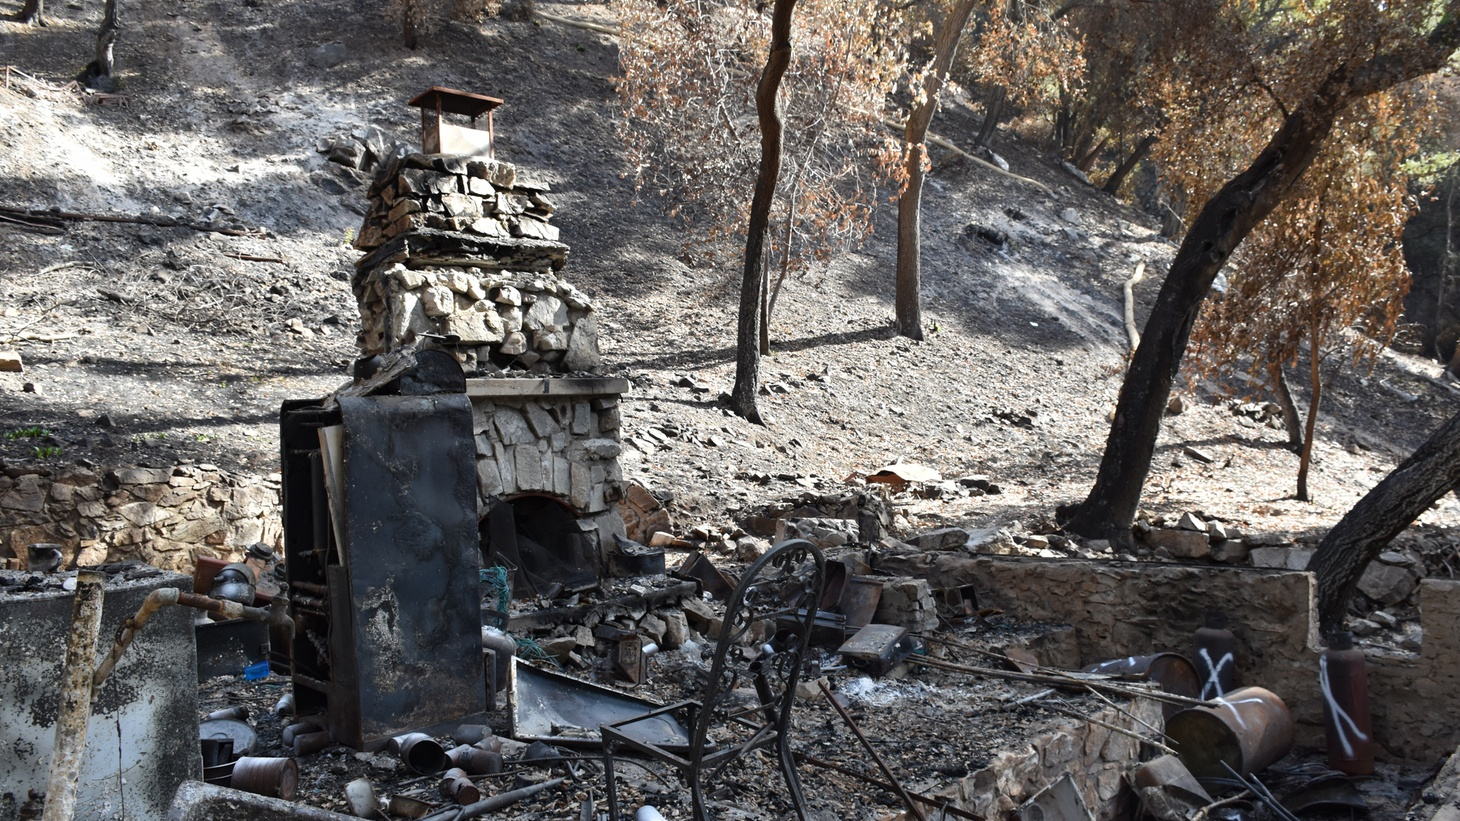 The Bobcat Fire destroyed 17 of the 81 historic cabins in Big Santa Anita Canyon, including this one.